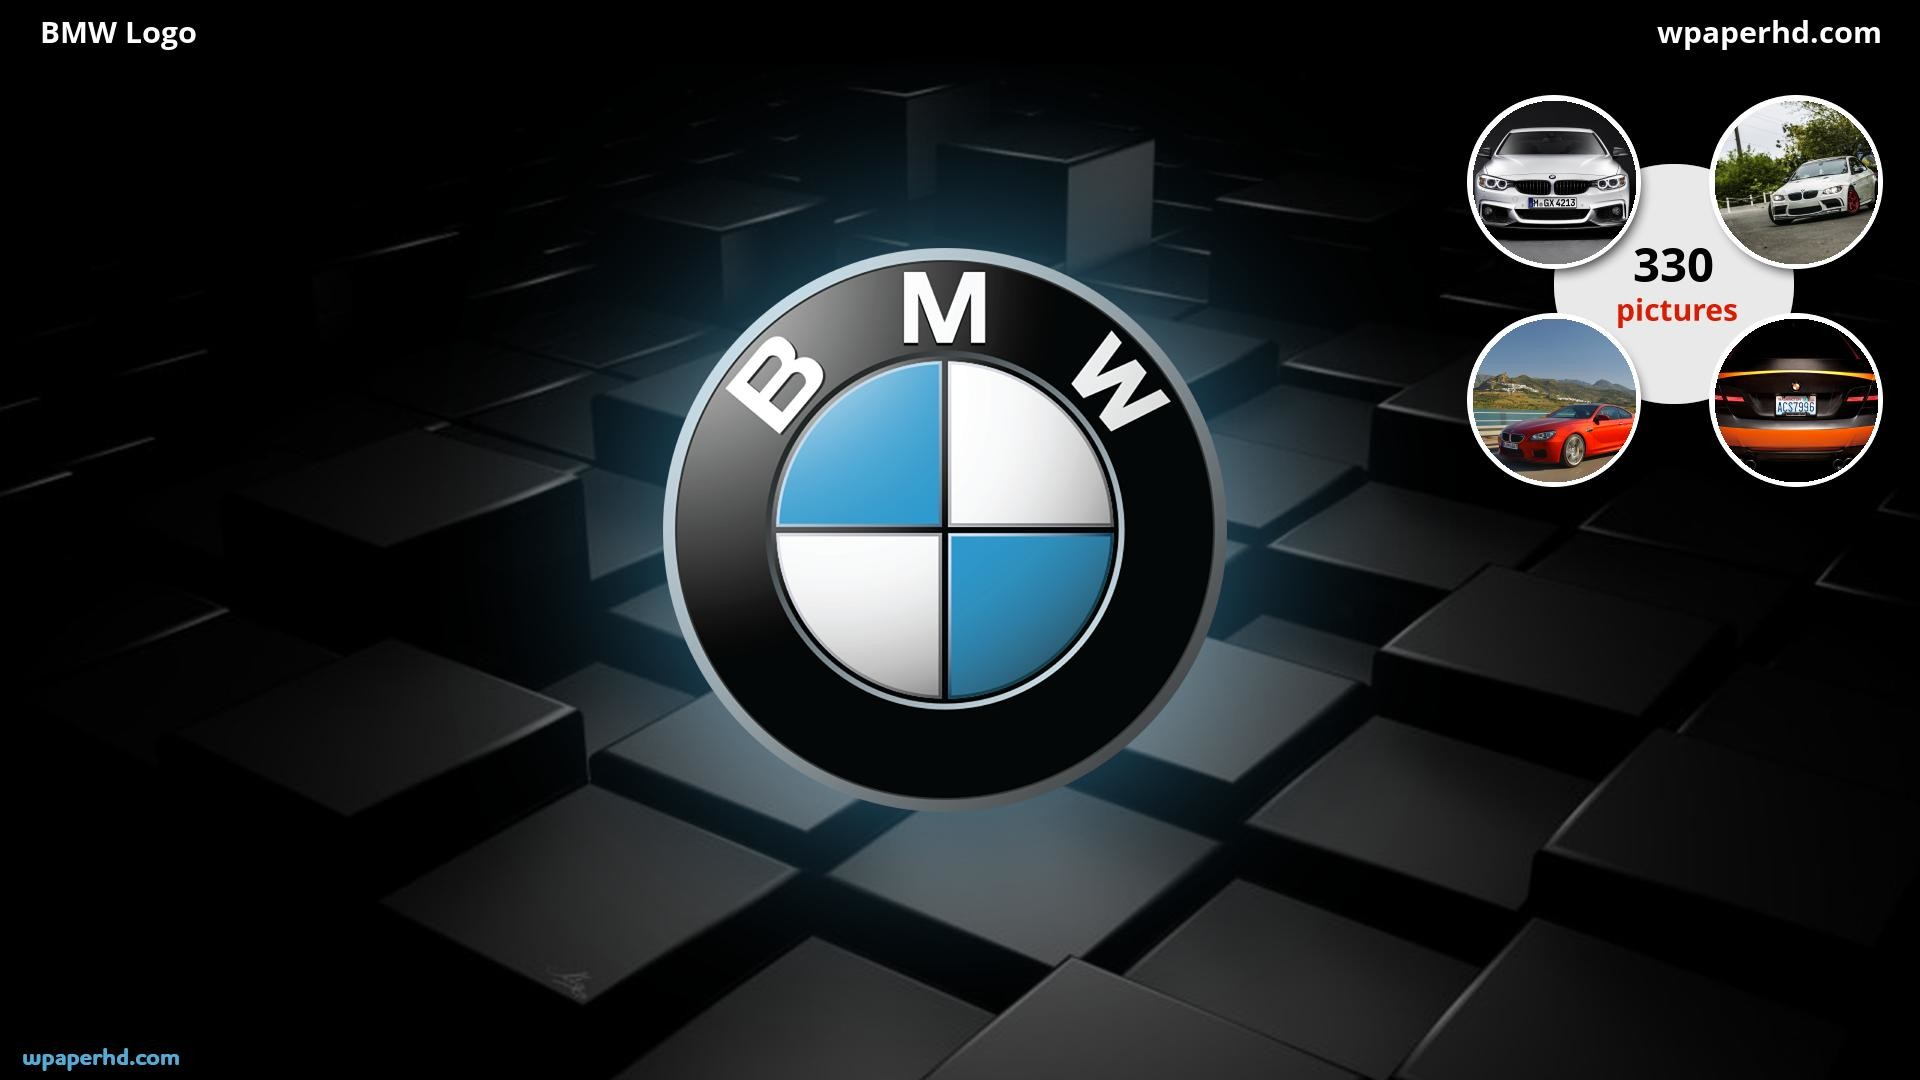 bmw m logo wallpaper a'